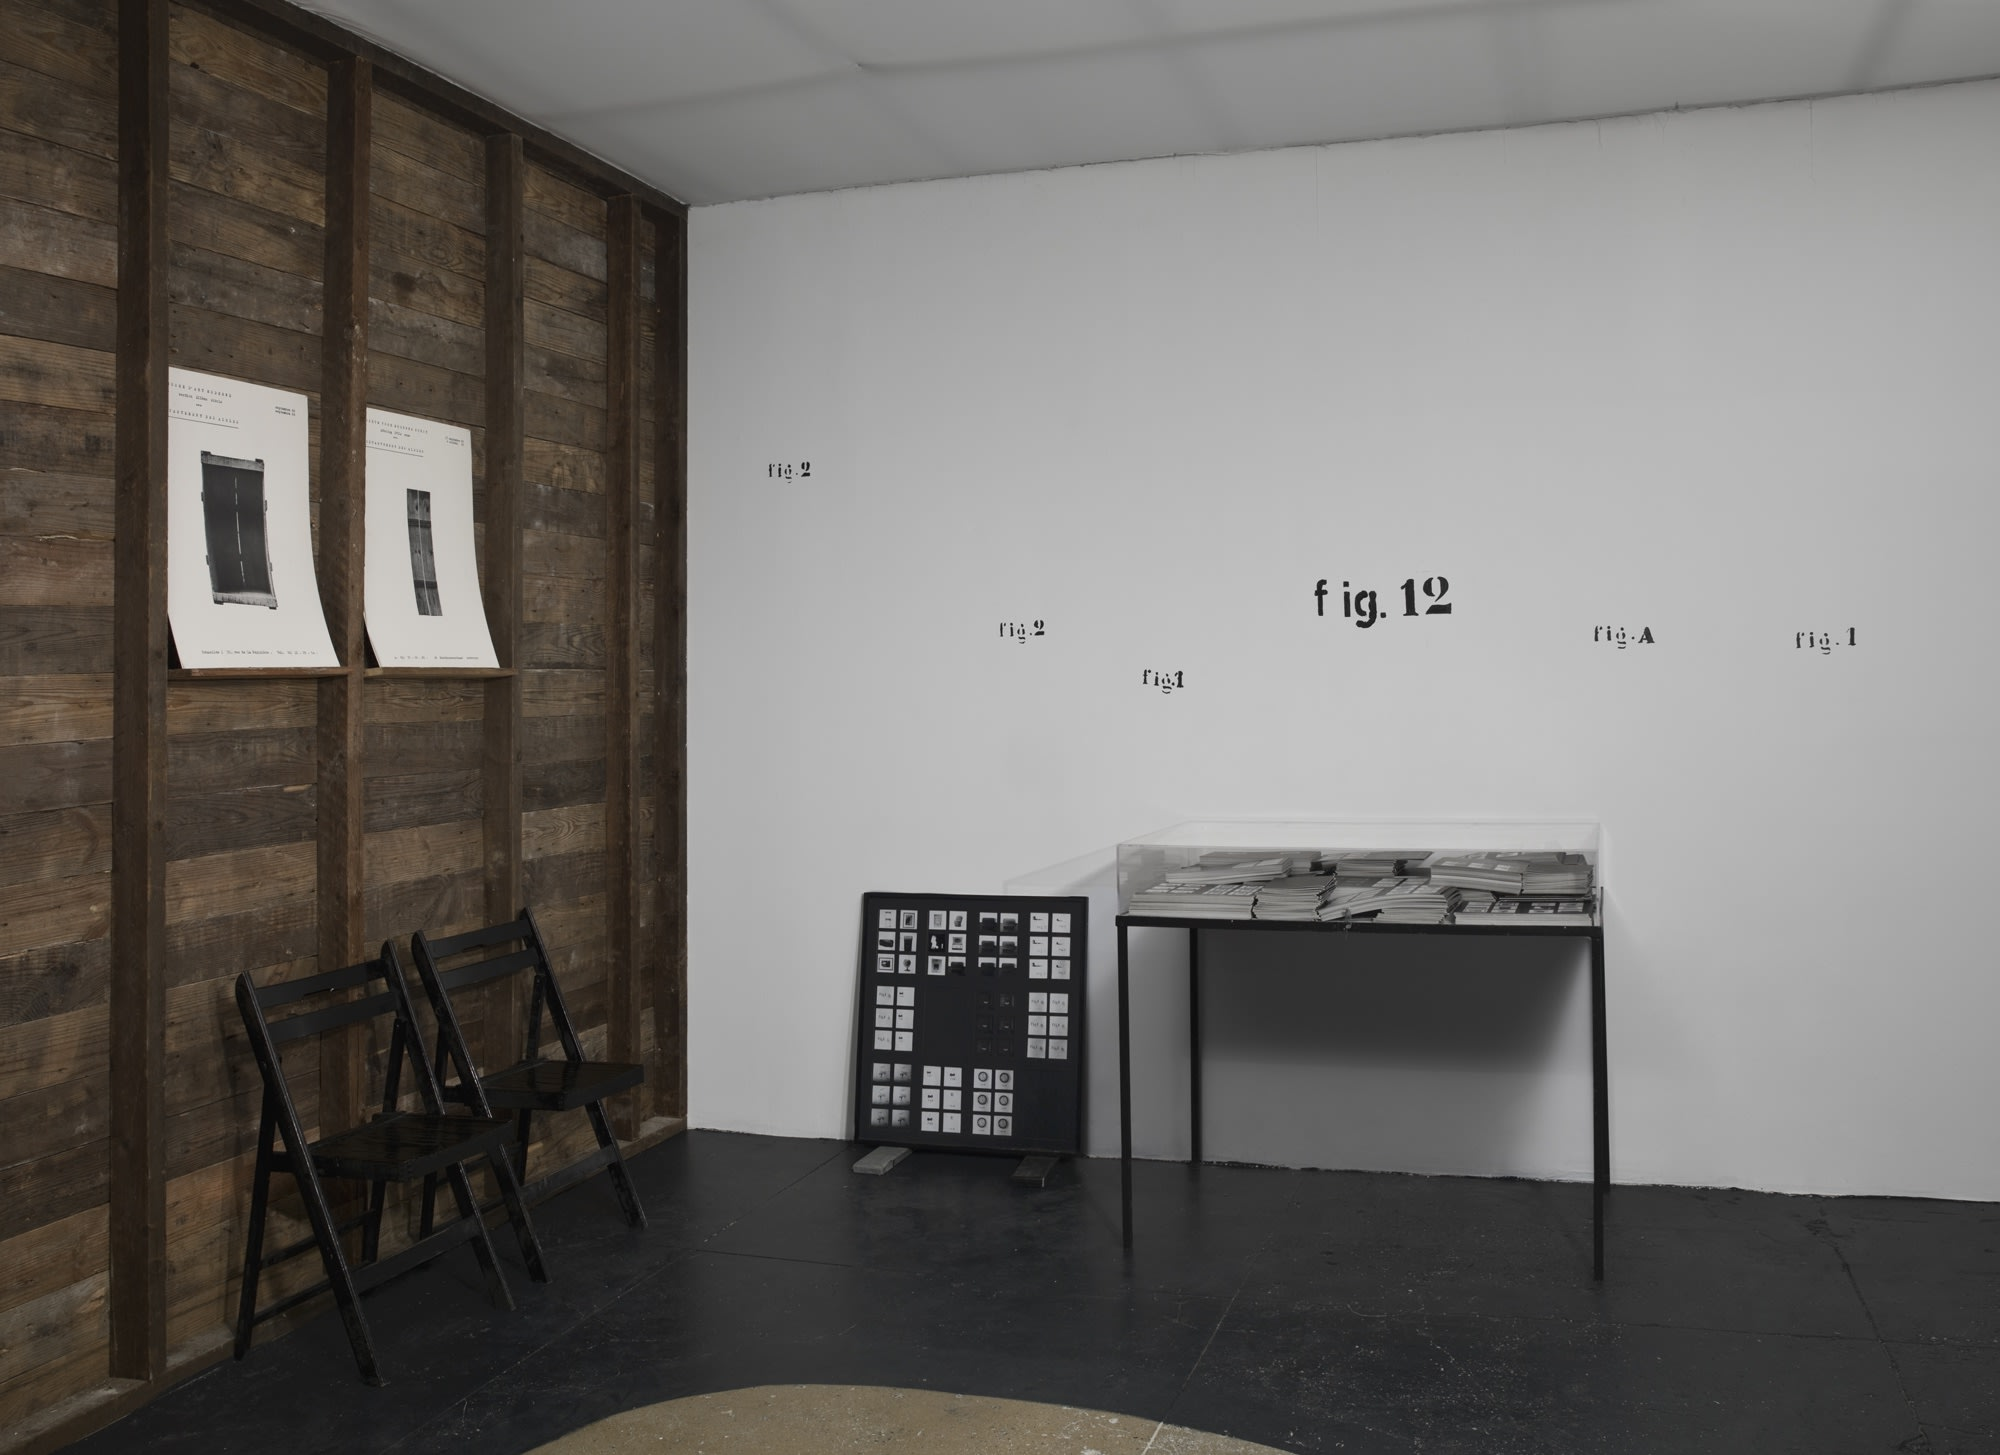 In a room with black floors, a white ceiling, a wooden wall on the left and a white wall straight ahead, there are two chairs by a table. The table is covered in stacks of paper, which is then covered by a glass barrier. Text on the white wall reads: fig.